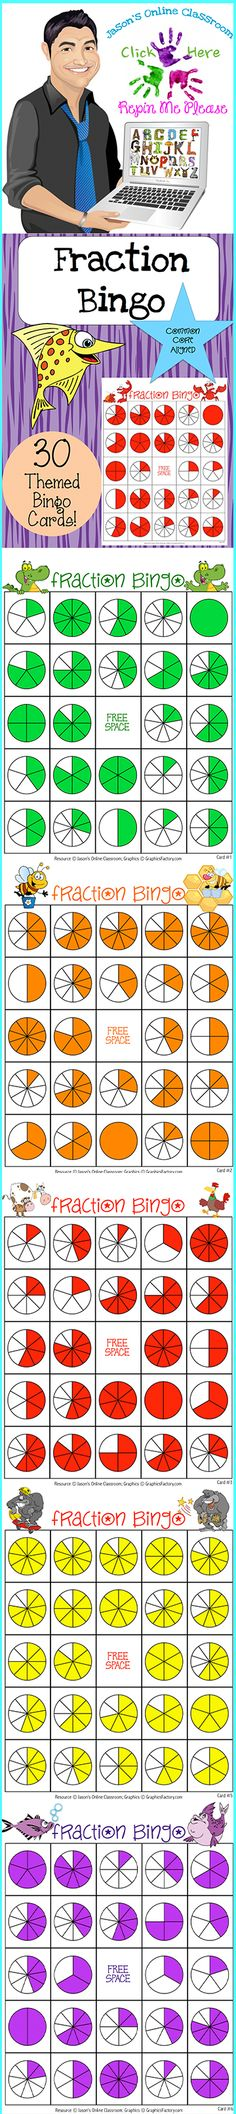 $6 Fraction Bingo -   This packet contains 30 randomized and uniquely themed fraction bingo cards and 2 bingo calling cards. There are 24 fractions and 1 free space on each bingo card. Each card has random fractions from 1/1 to 10/10. We suggest that all pages are printed out and laminated.  Use this one resource for years!  Click on the link below for more info about the images used to make this resource (Images © Graphics Factory) http://jasonsonlineclassroom.com./graphics-factory/